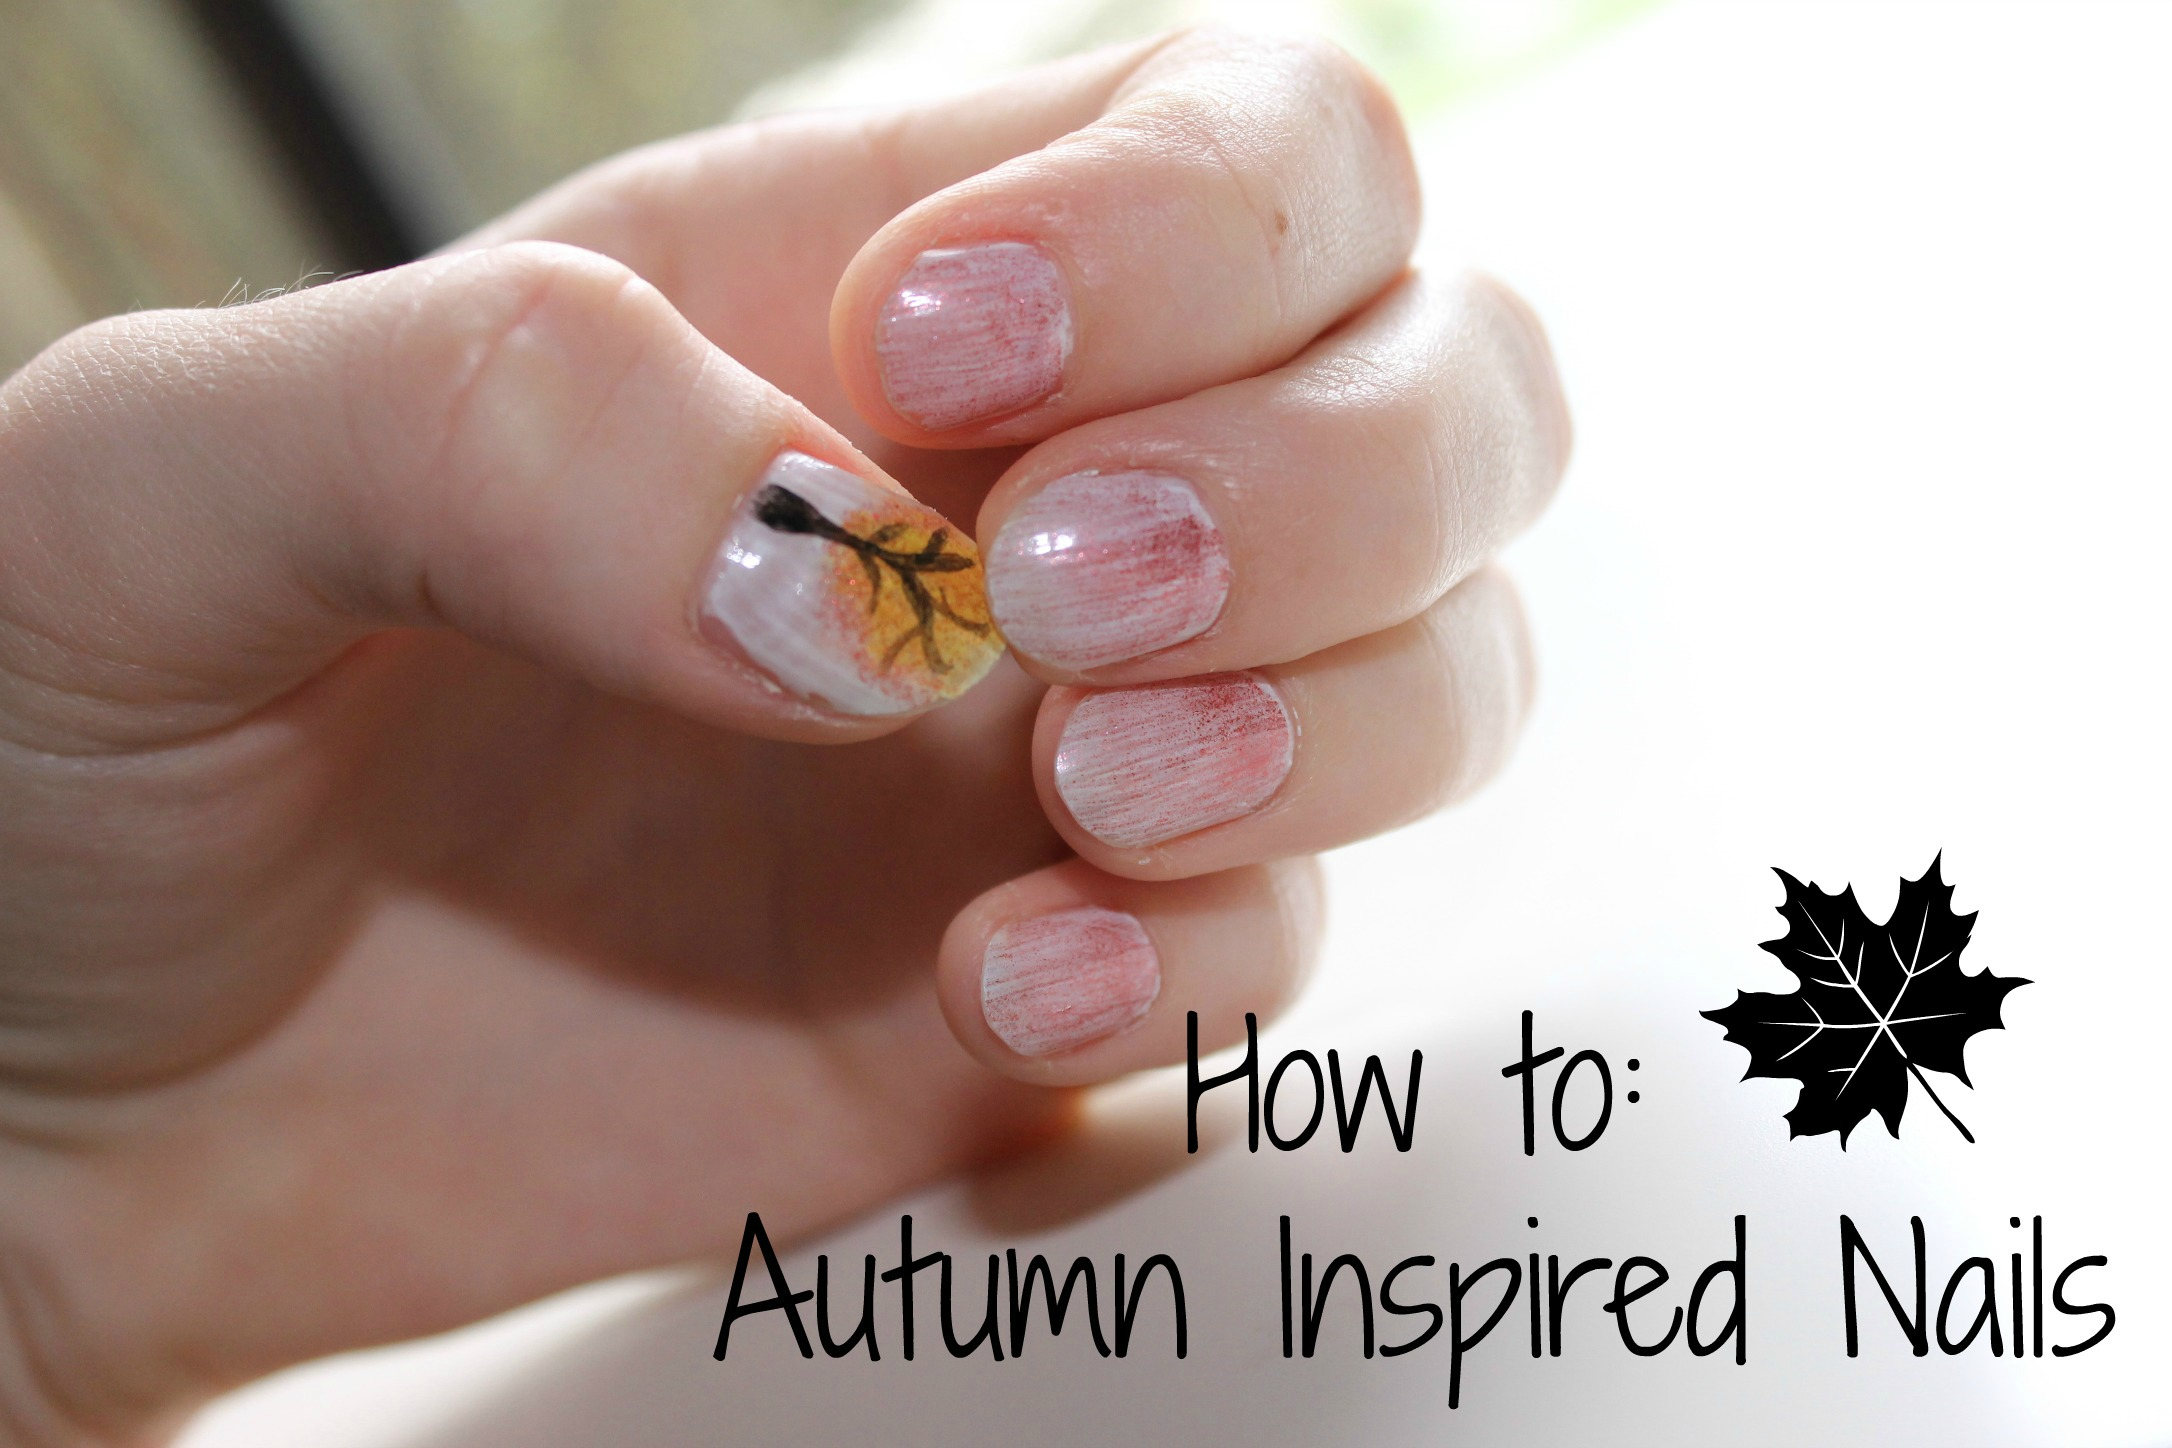 Autumn Inspired Nails